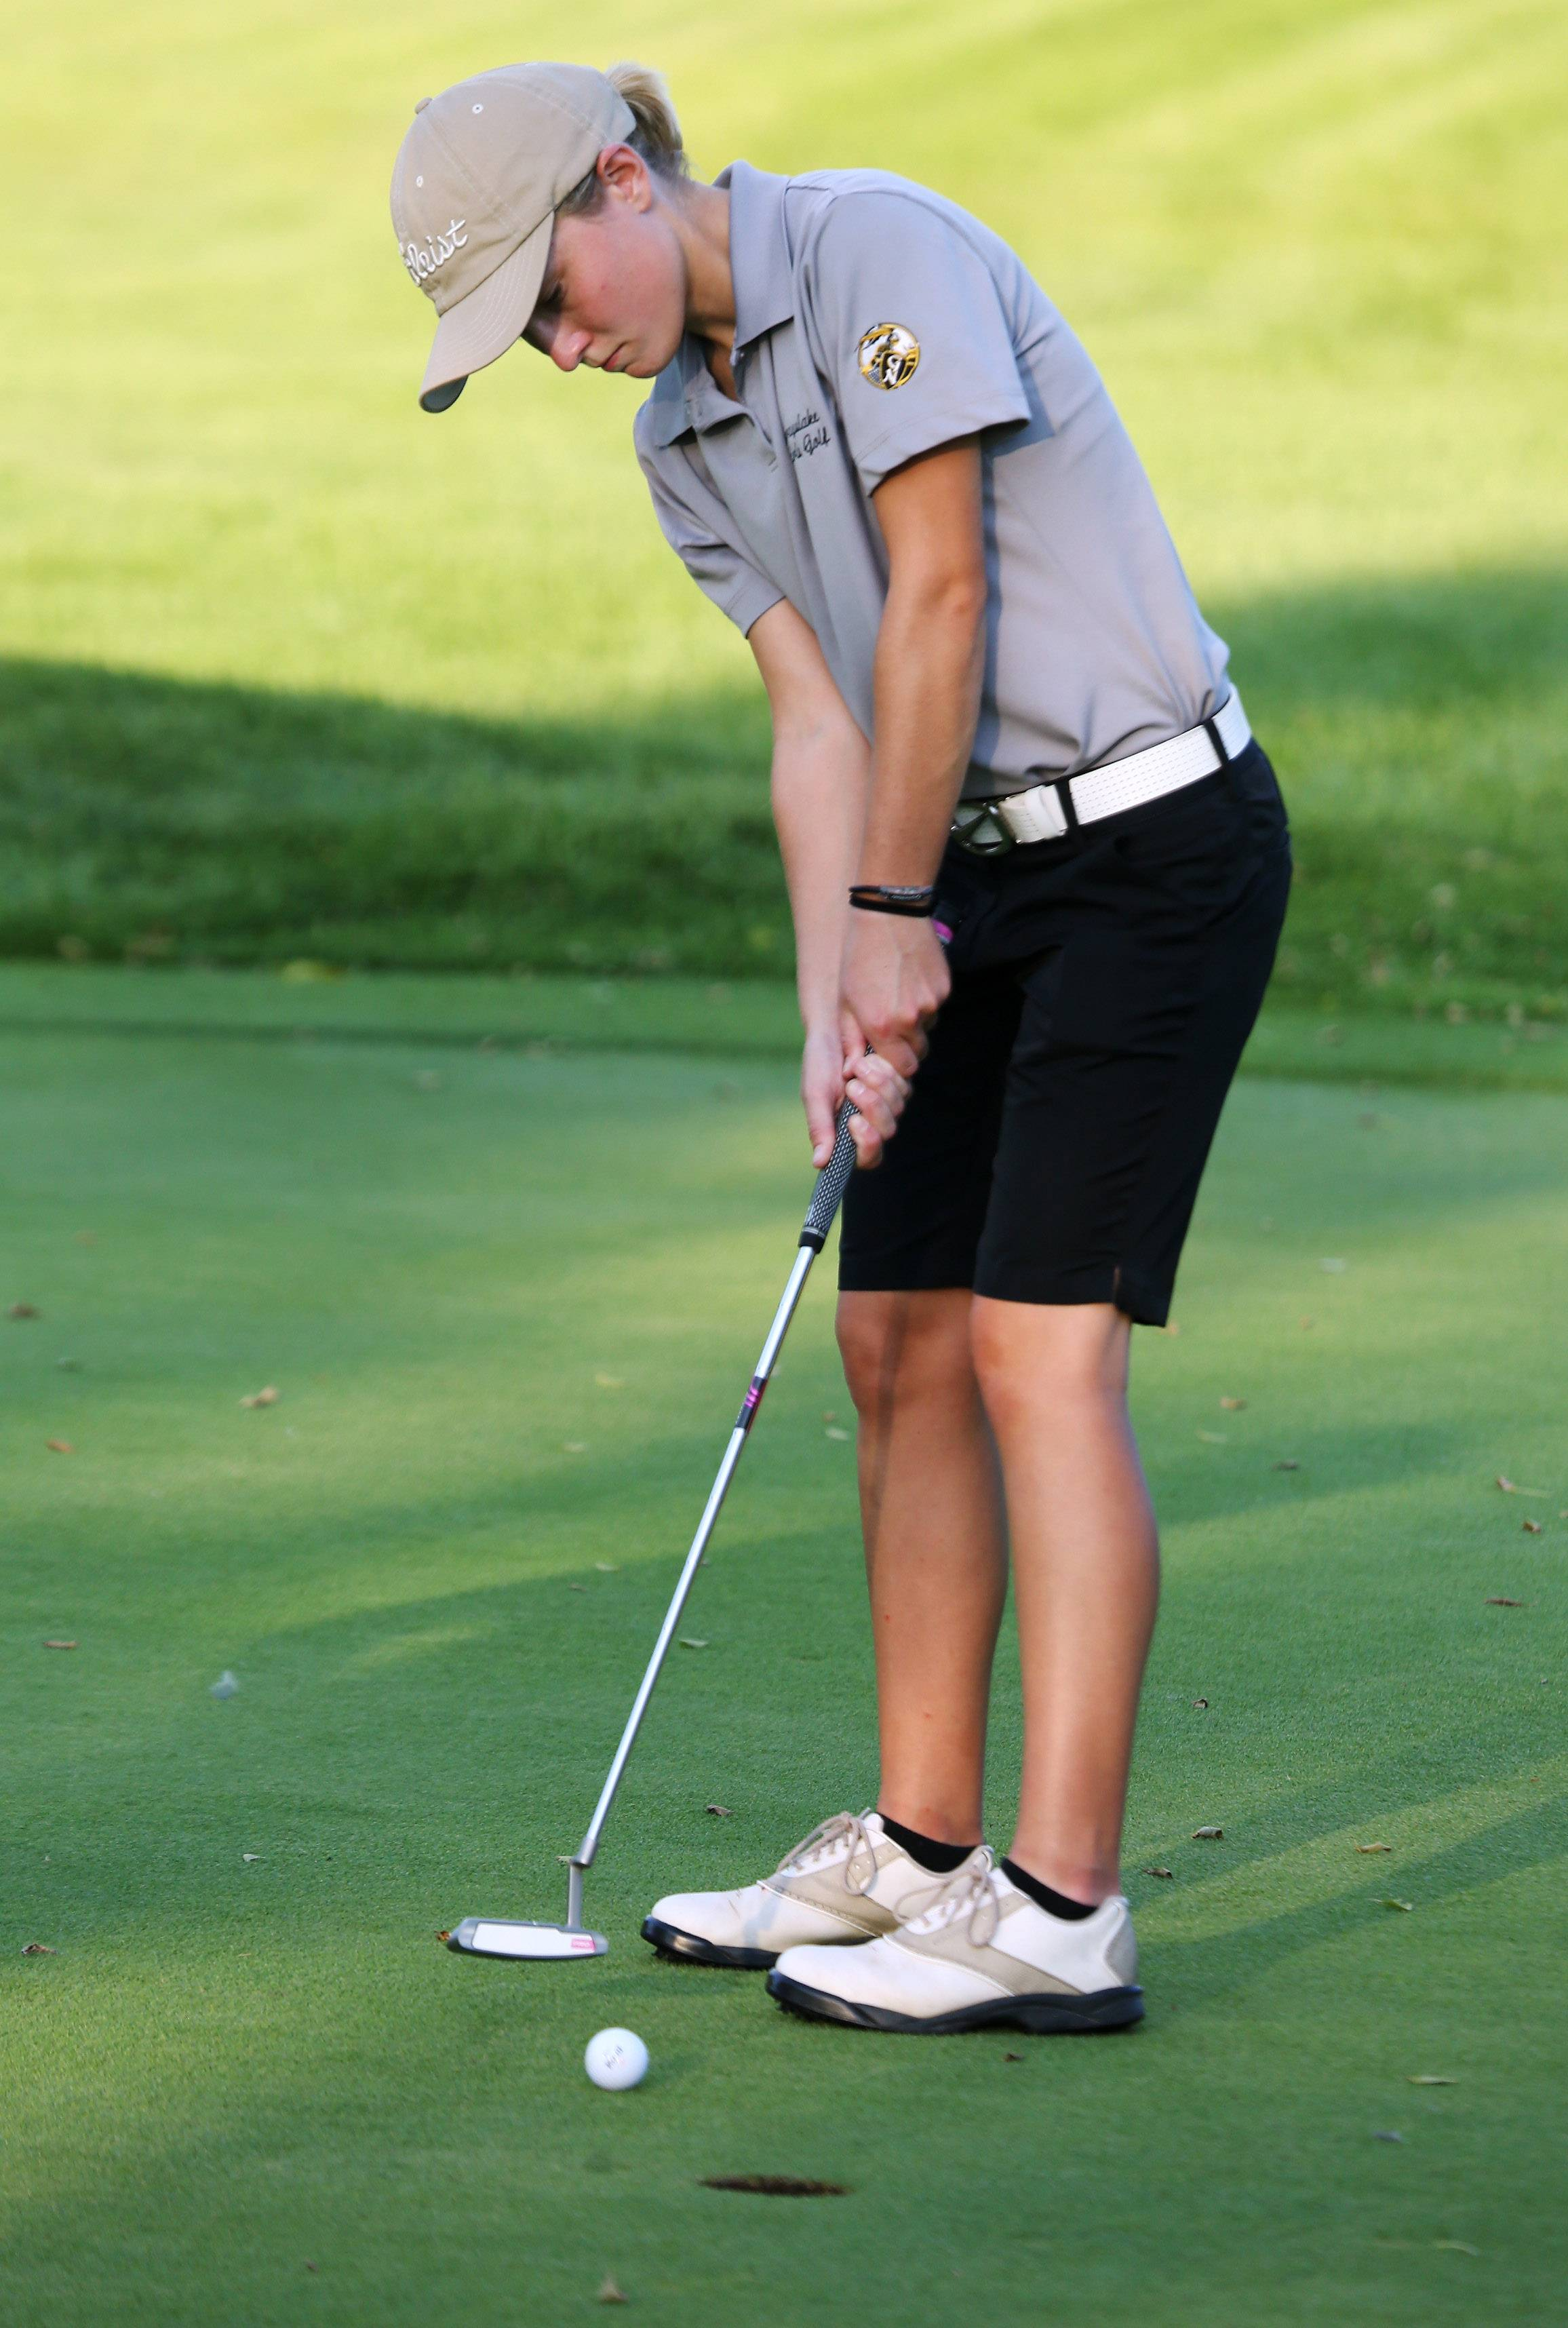 Grayslake golfer Ireland Dunne puts on the 10th hole during the high school girls golf match between Grayslake and Marengo on Thursday at Brae Loch Golf Course in Grayslake.